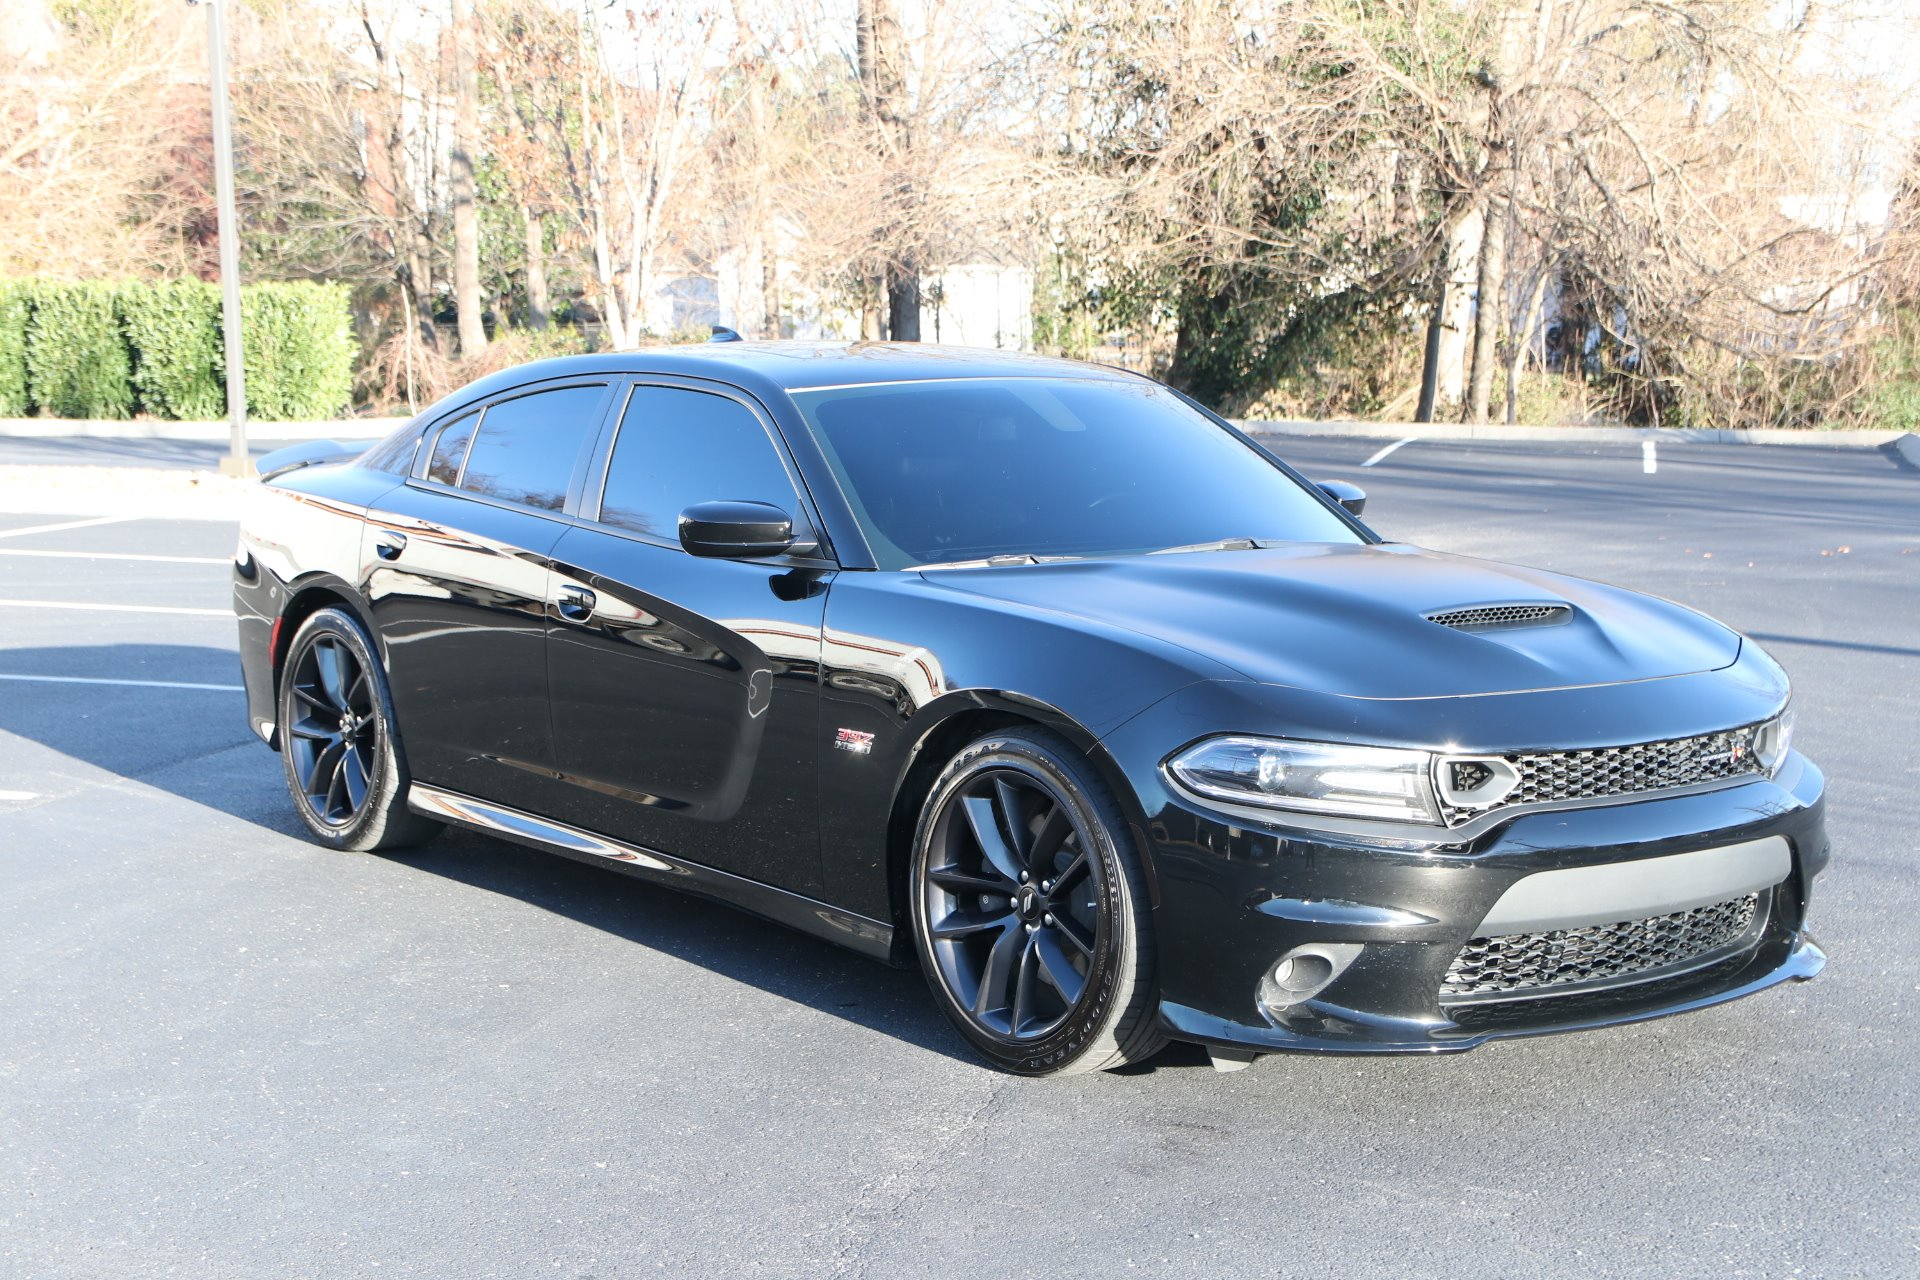 Used 2019 Dodge Charger Scat Pack Plus W/NAV R/T Scat Pack for sale Sold at Auto Collection in Murfreesboro TN 37130 1